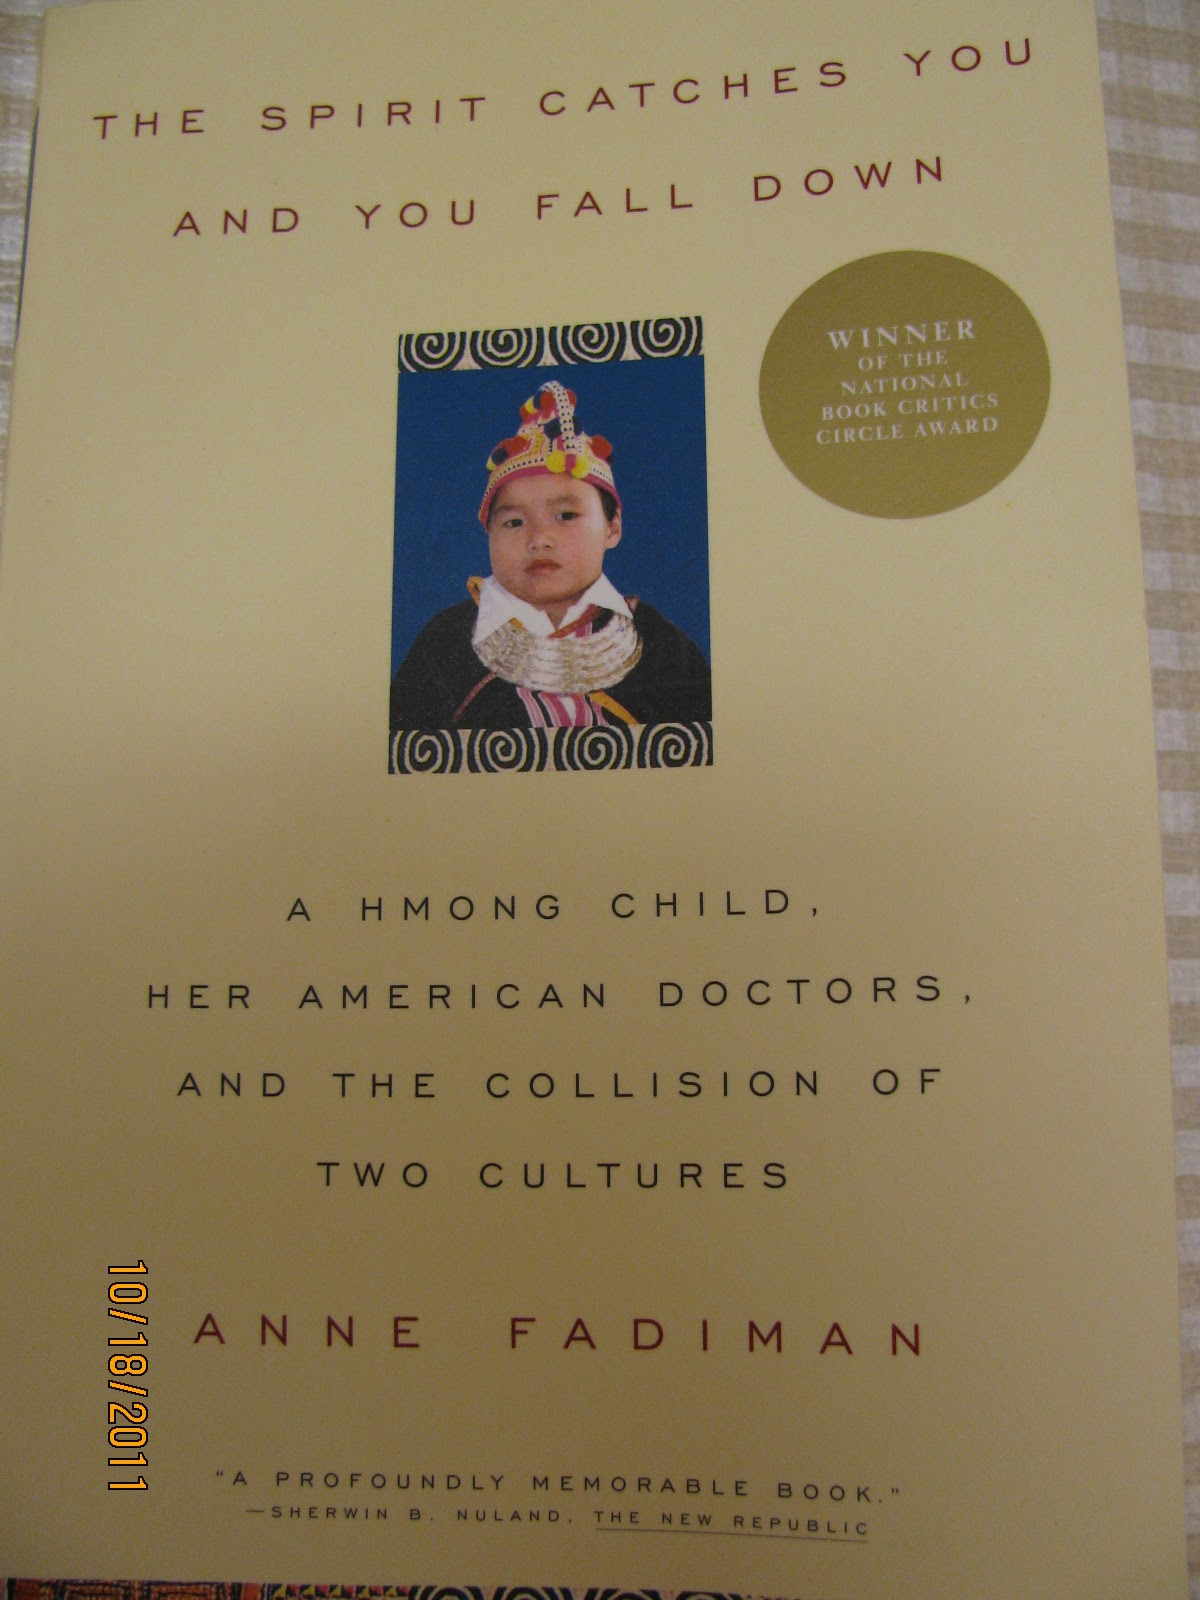 an analysis of anne fadimans the spirit catches you and you fall down The spirit catches you and you fall down essay the spirit catches you and you fall down: a hmong child, her american doctorsthe first chapter of anne fadimans the.